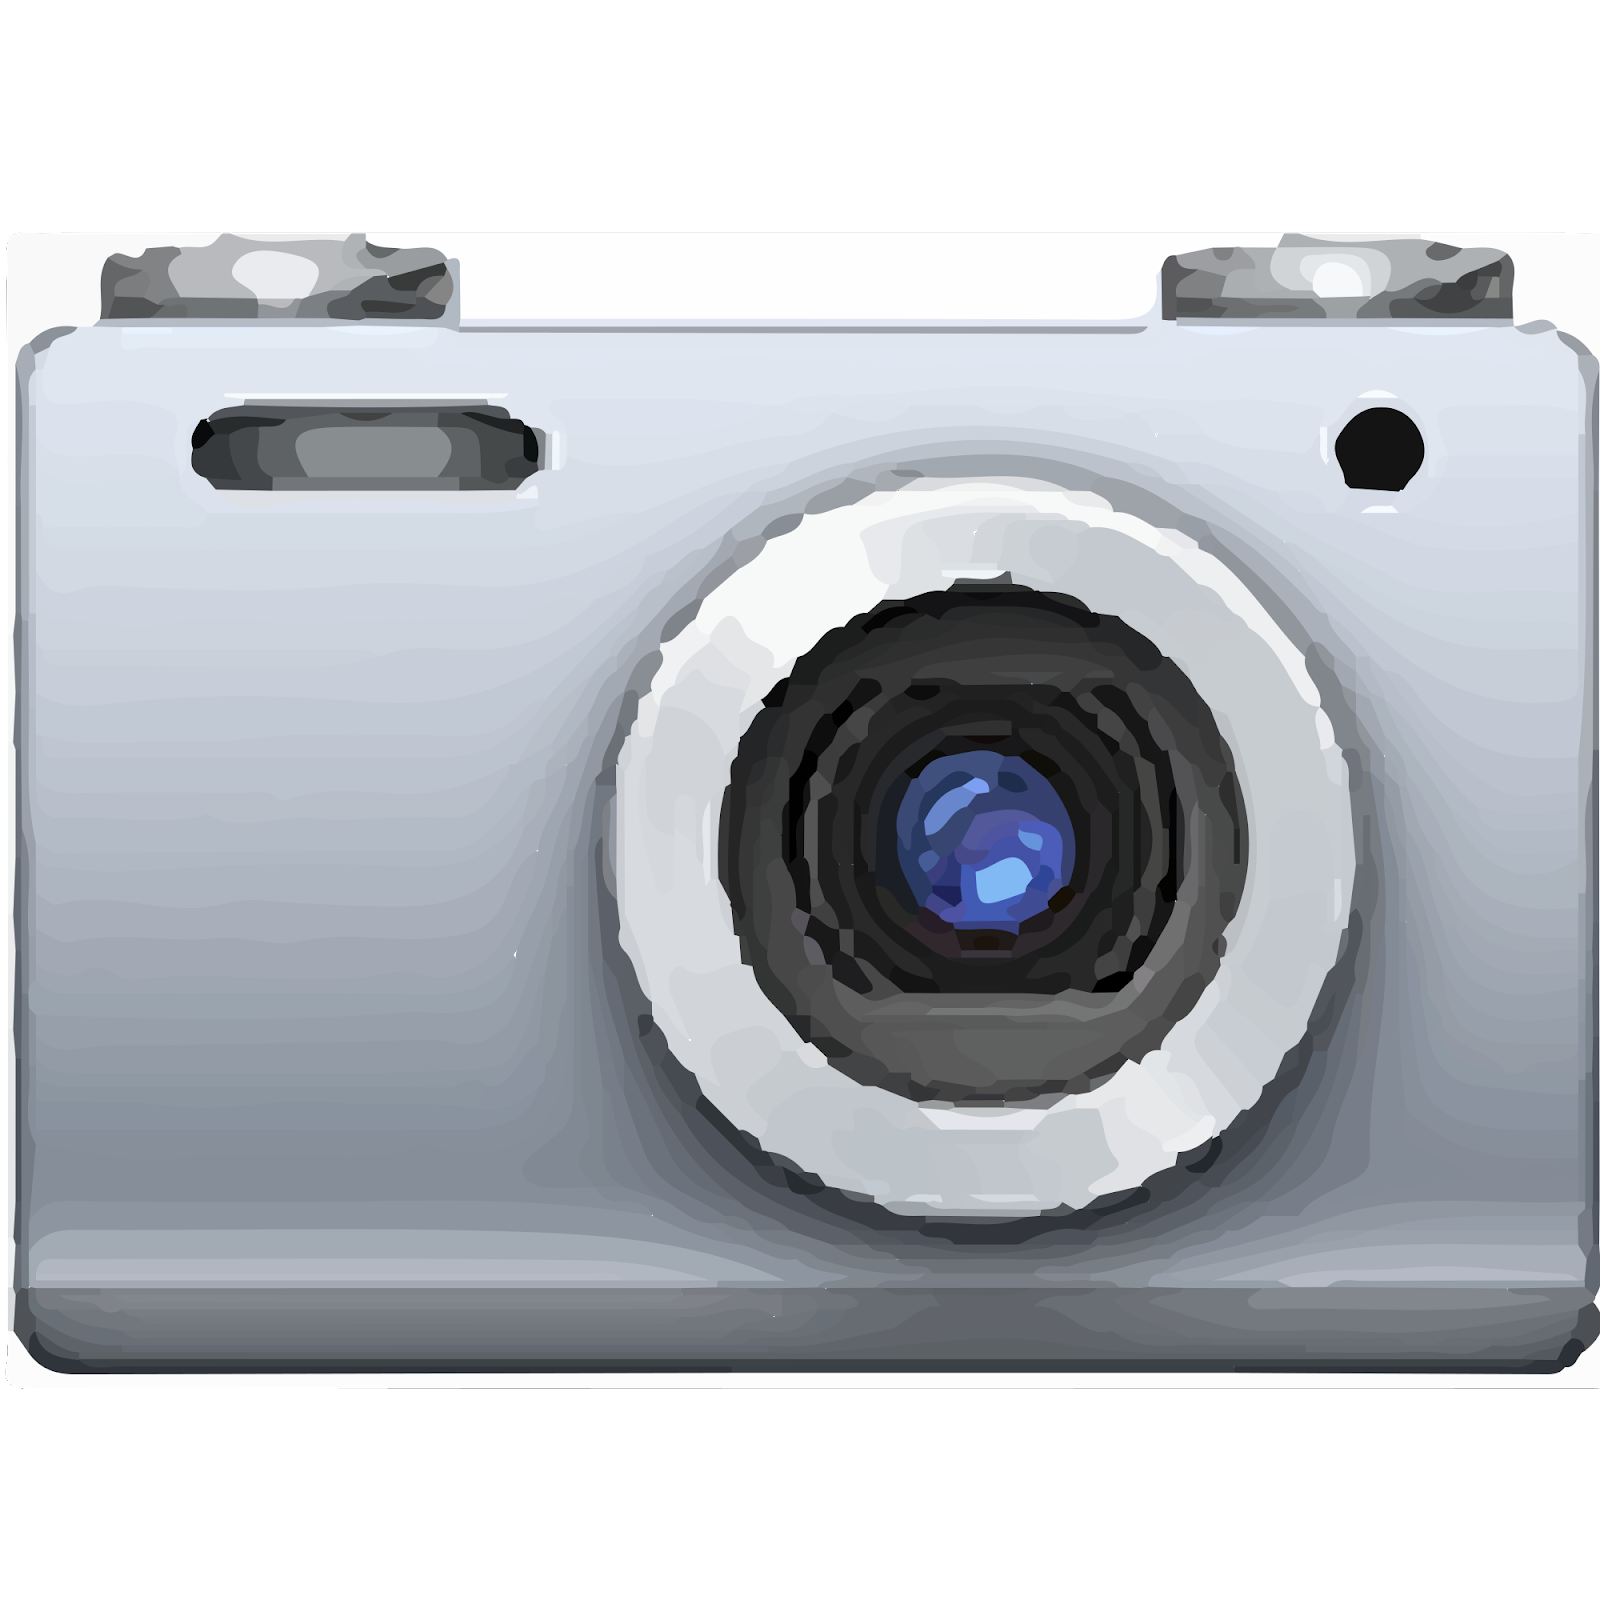 File:Camera emoji SVG.svg - Wikimedia Commons